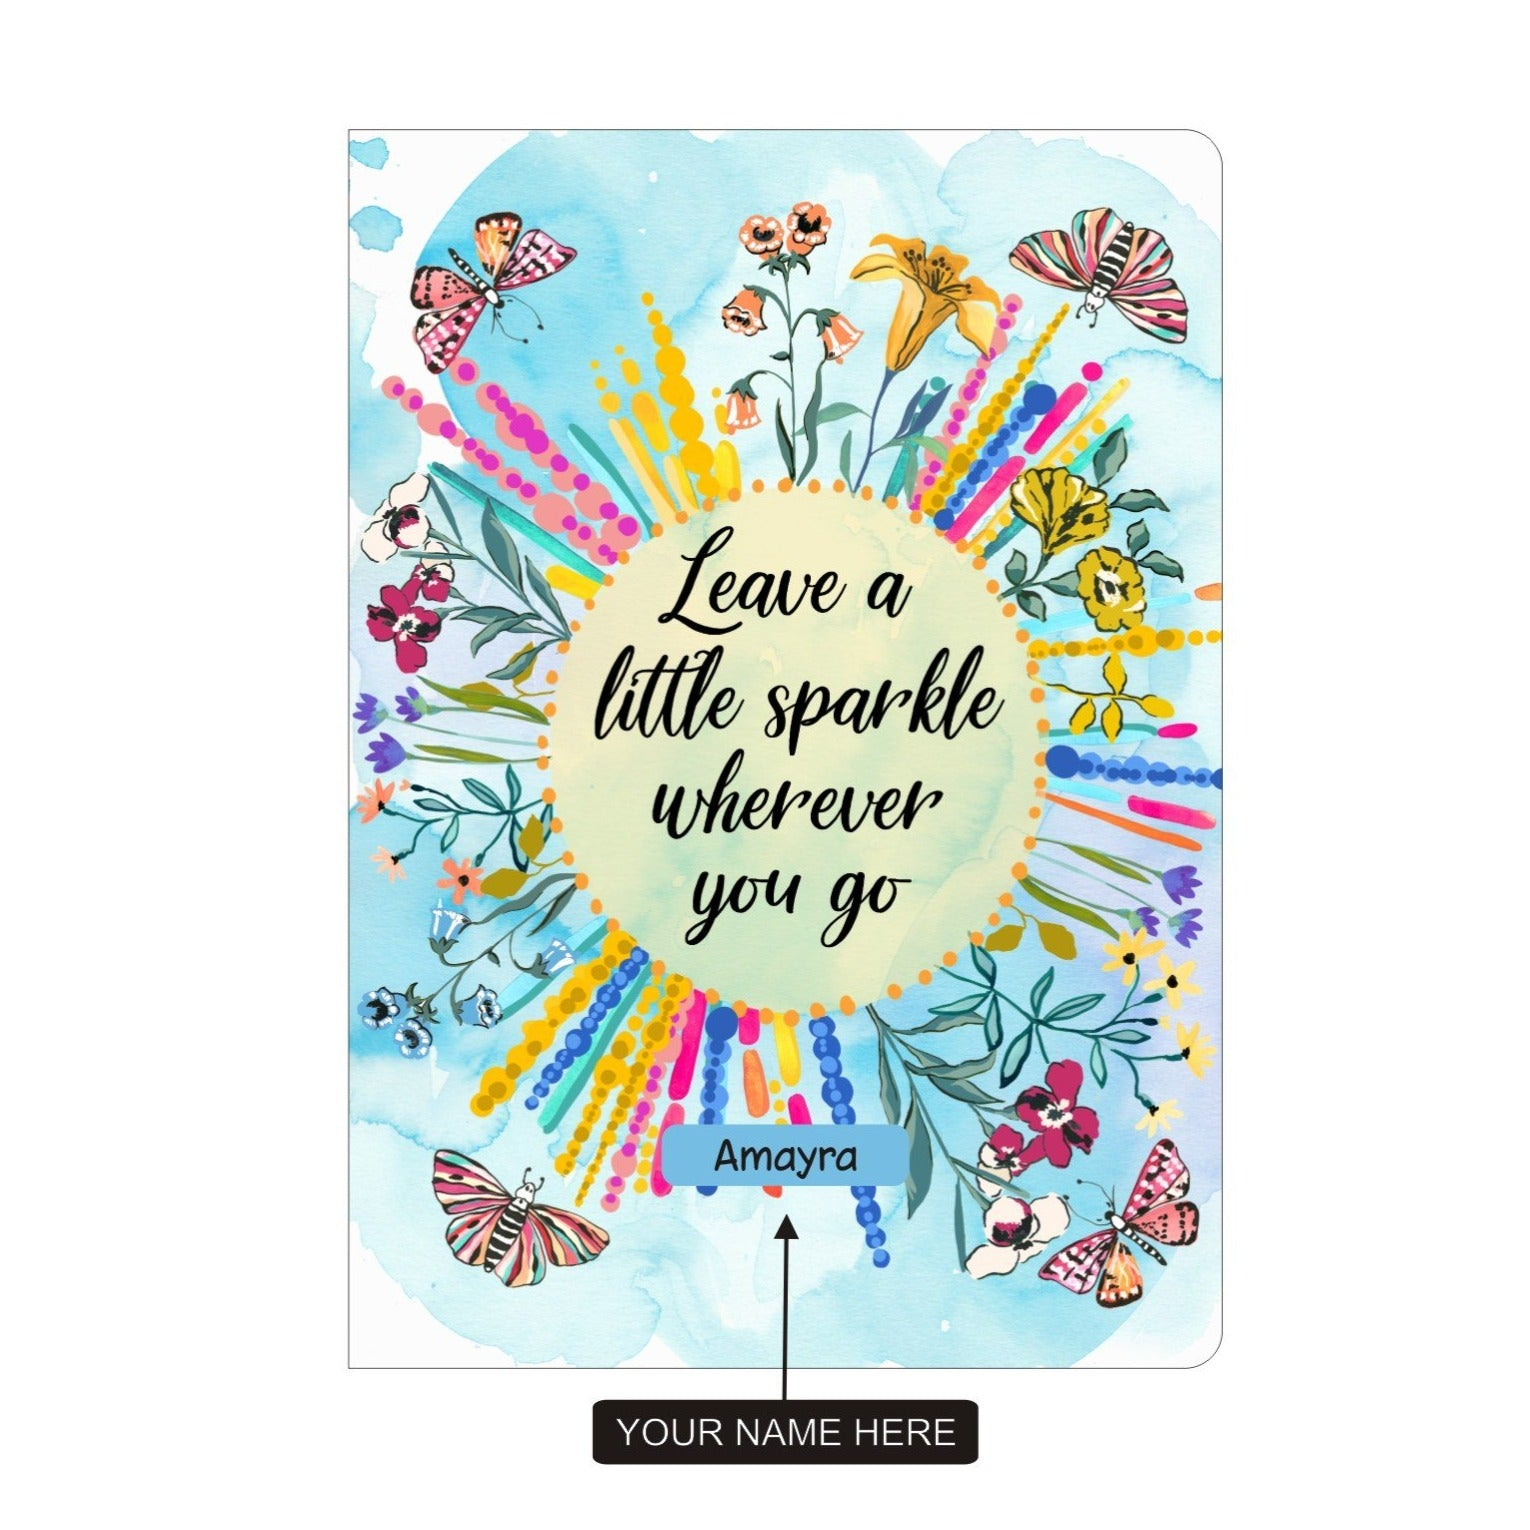 Gifts of Love Personalised Soft Cover Notebook A5 Leave a Little Sparkle Wherever You Go